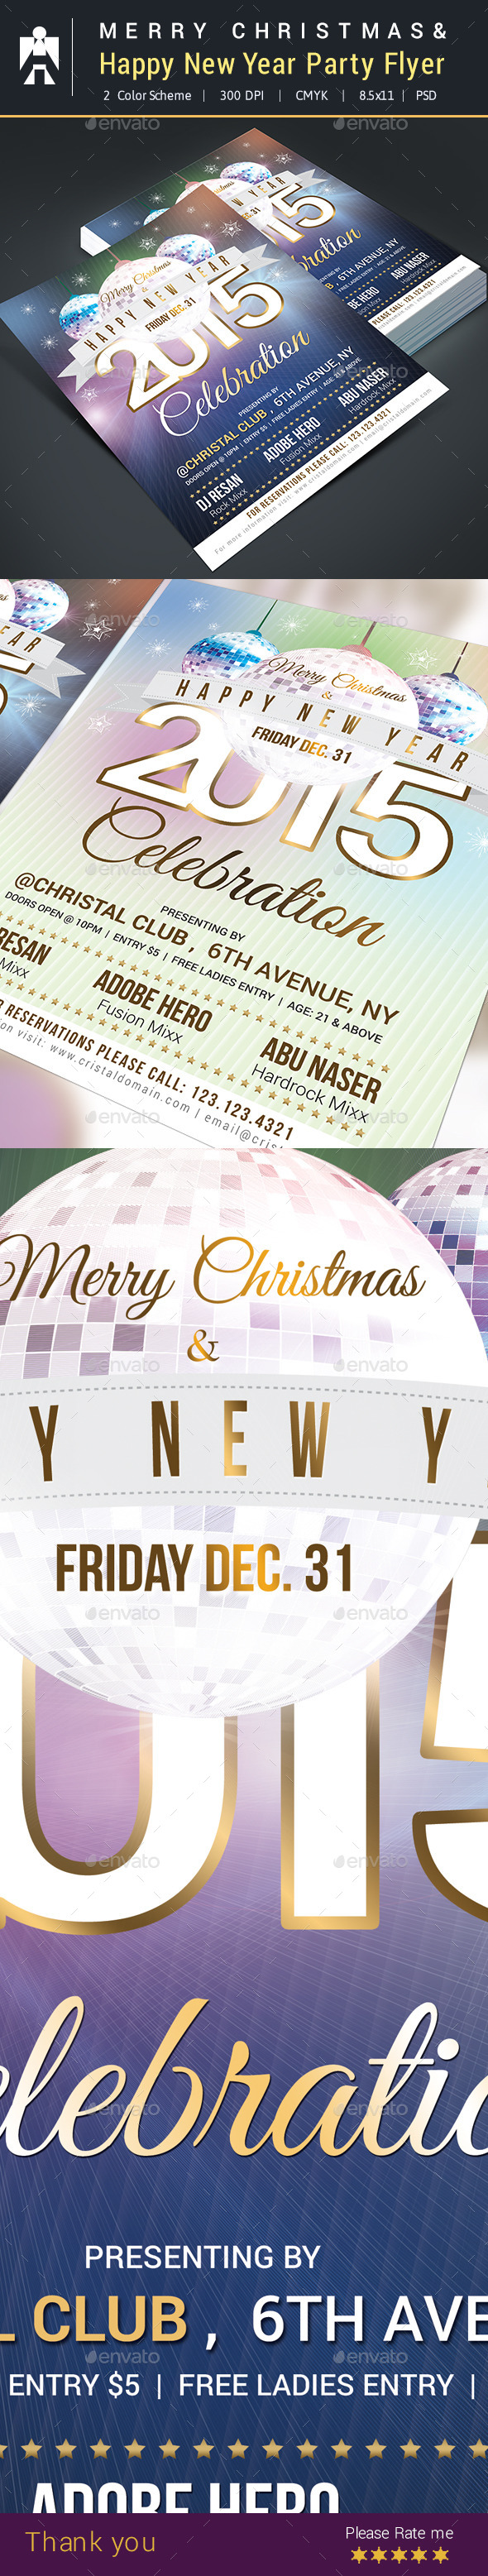 Happy New Year Party Flyer  - Clubs & Parties Events